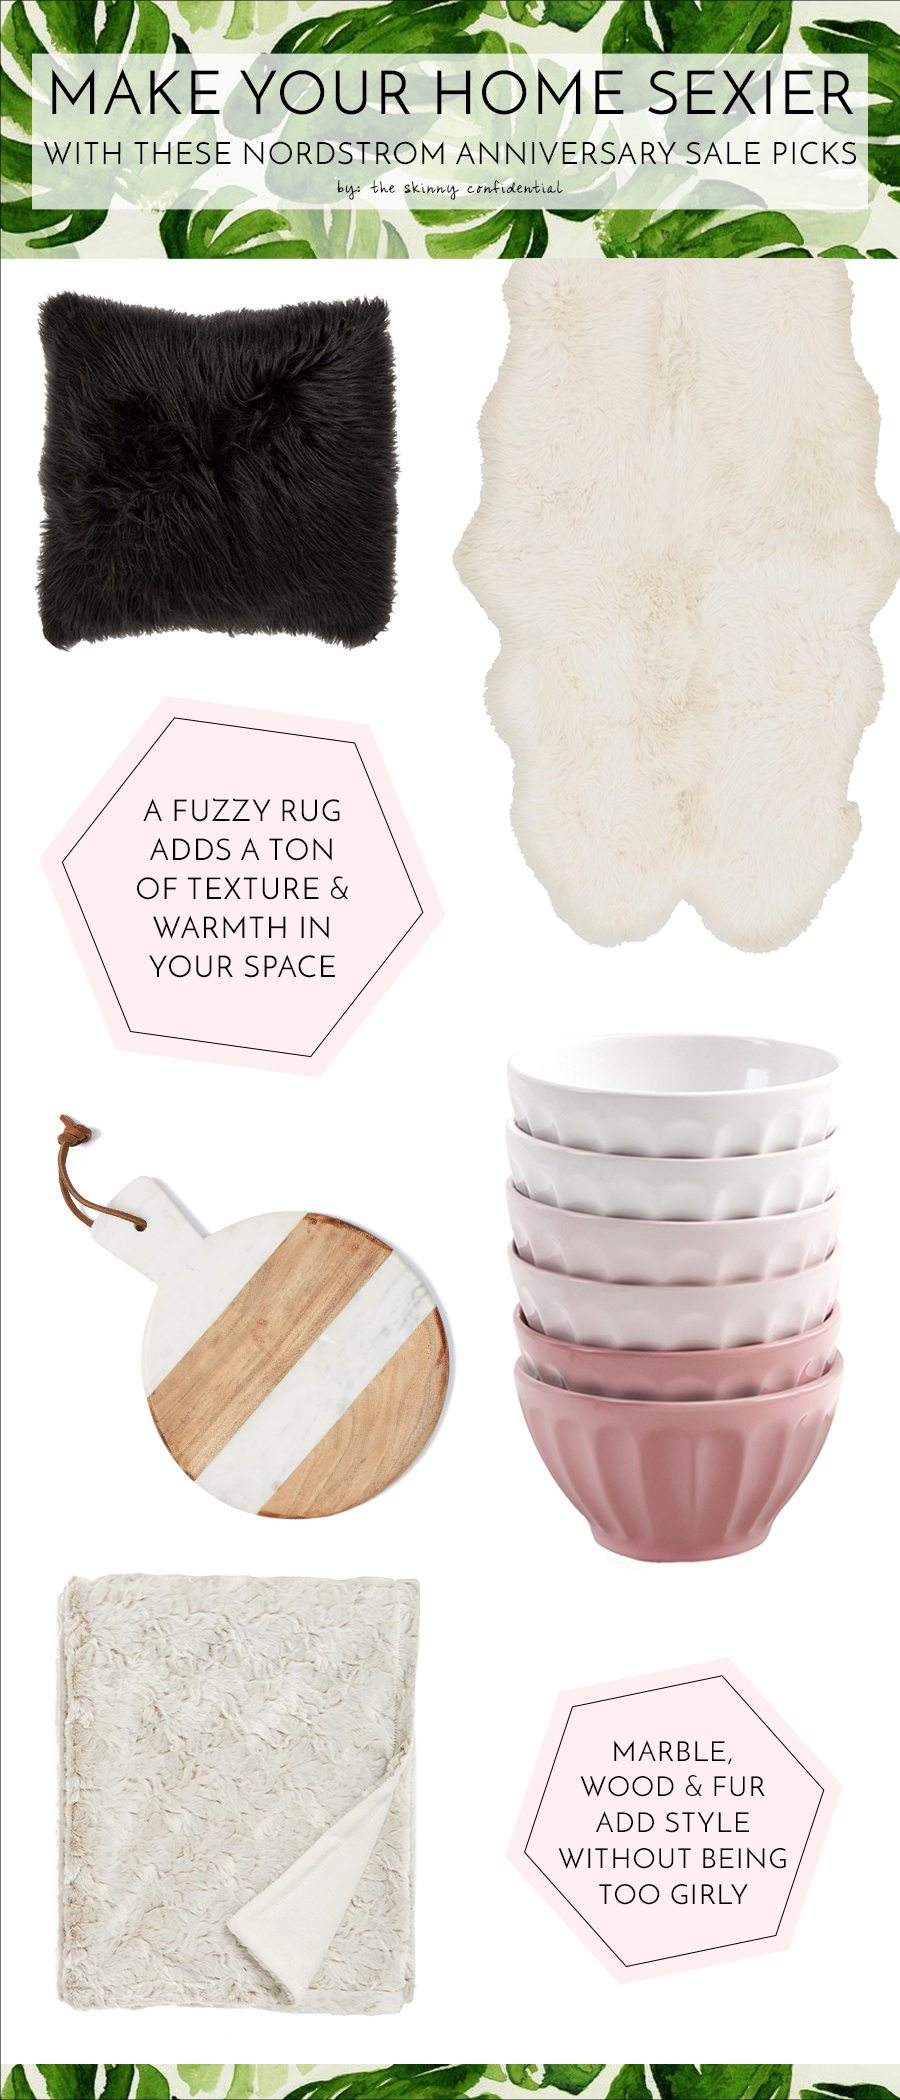 make your home sexier with these nordstrom anniversary sale picks | by the skinny confidential